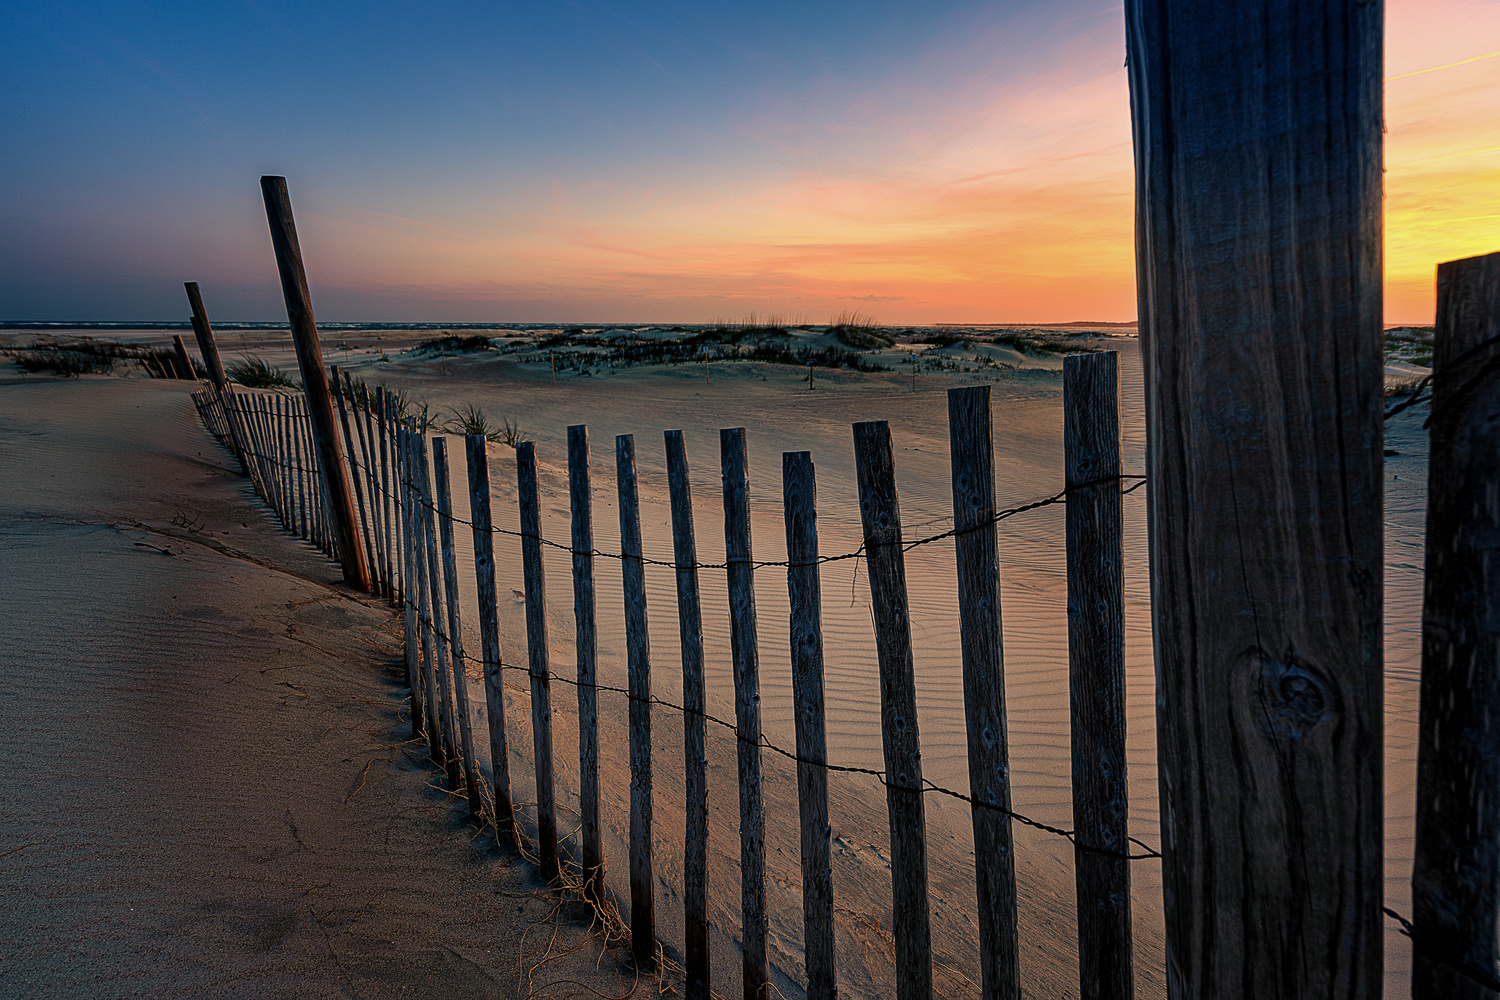 Beach Fence by Kyle Foreman